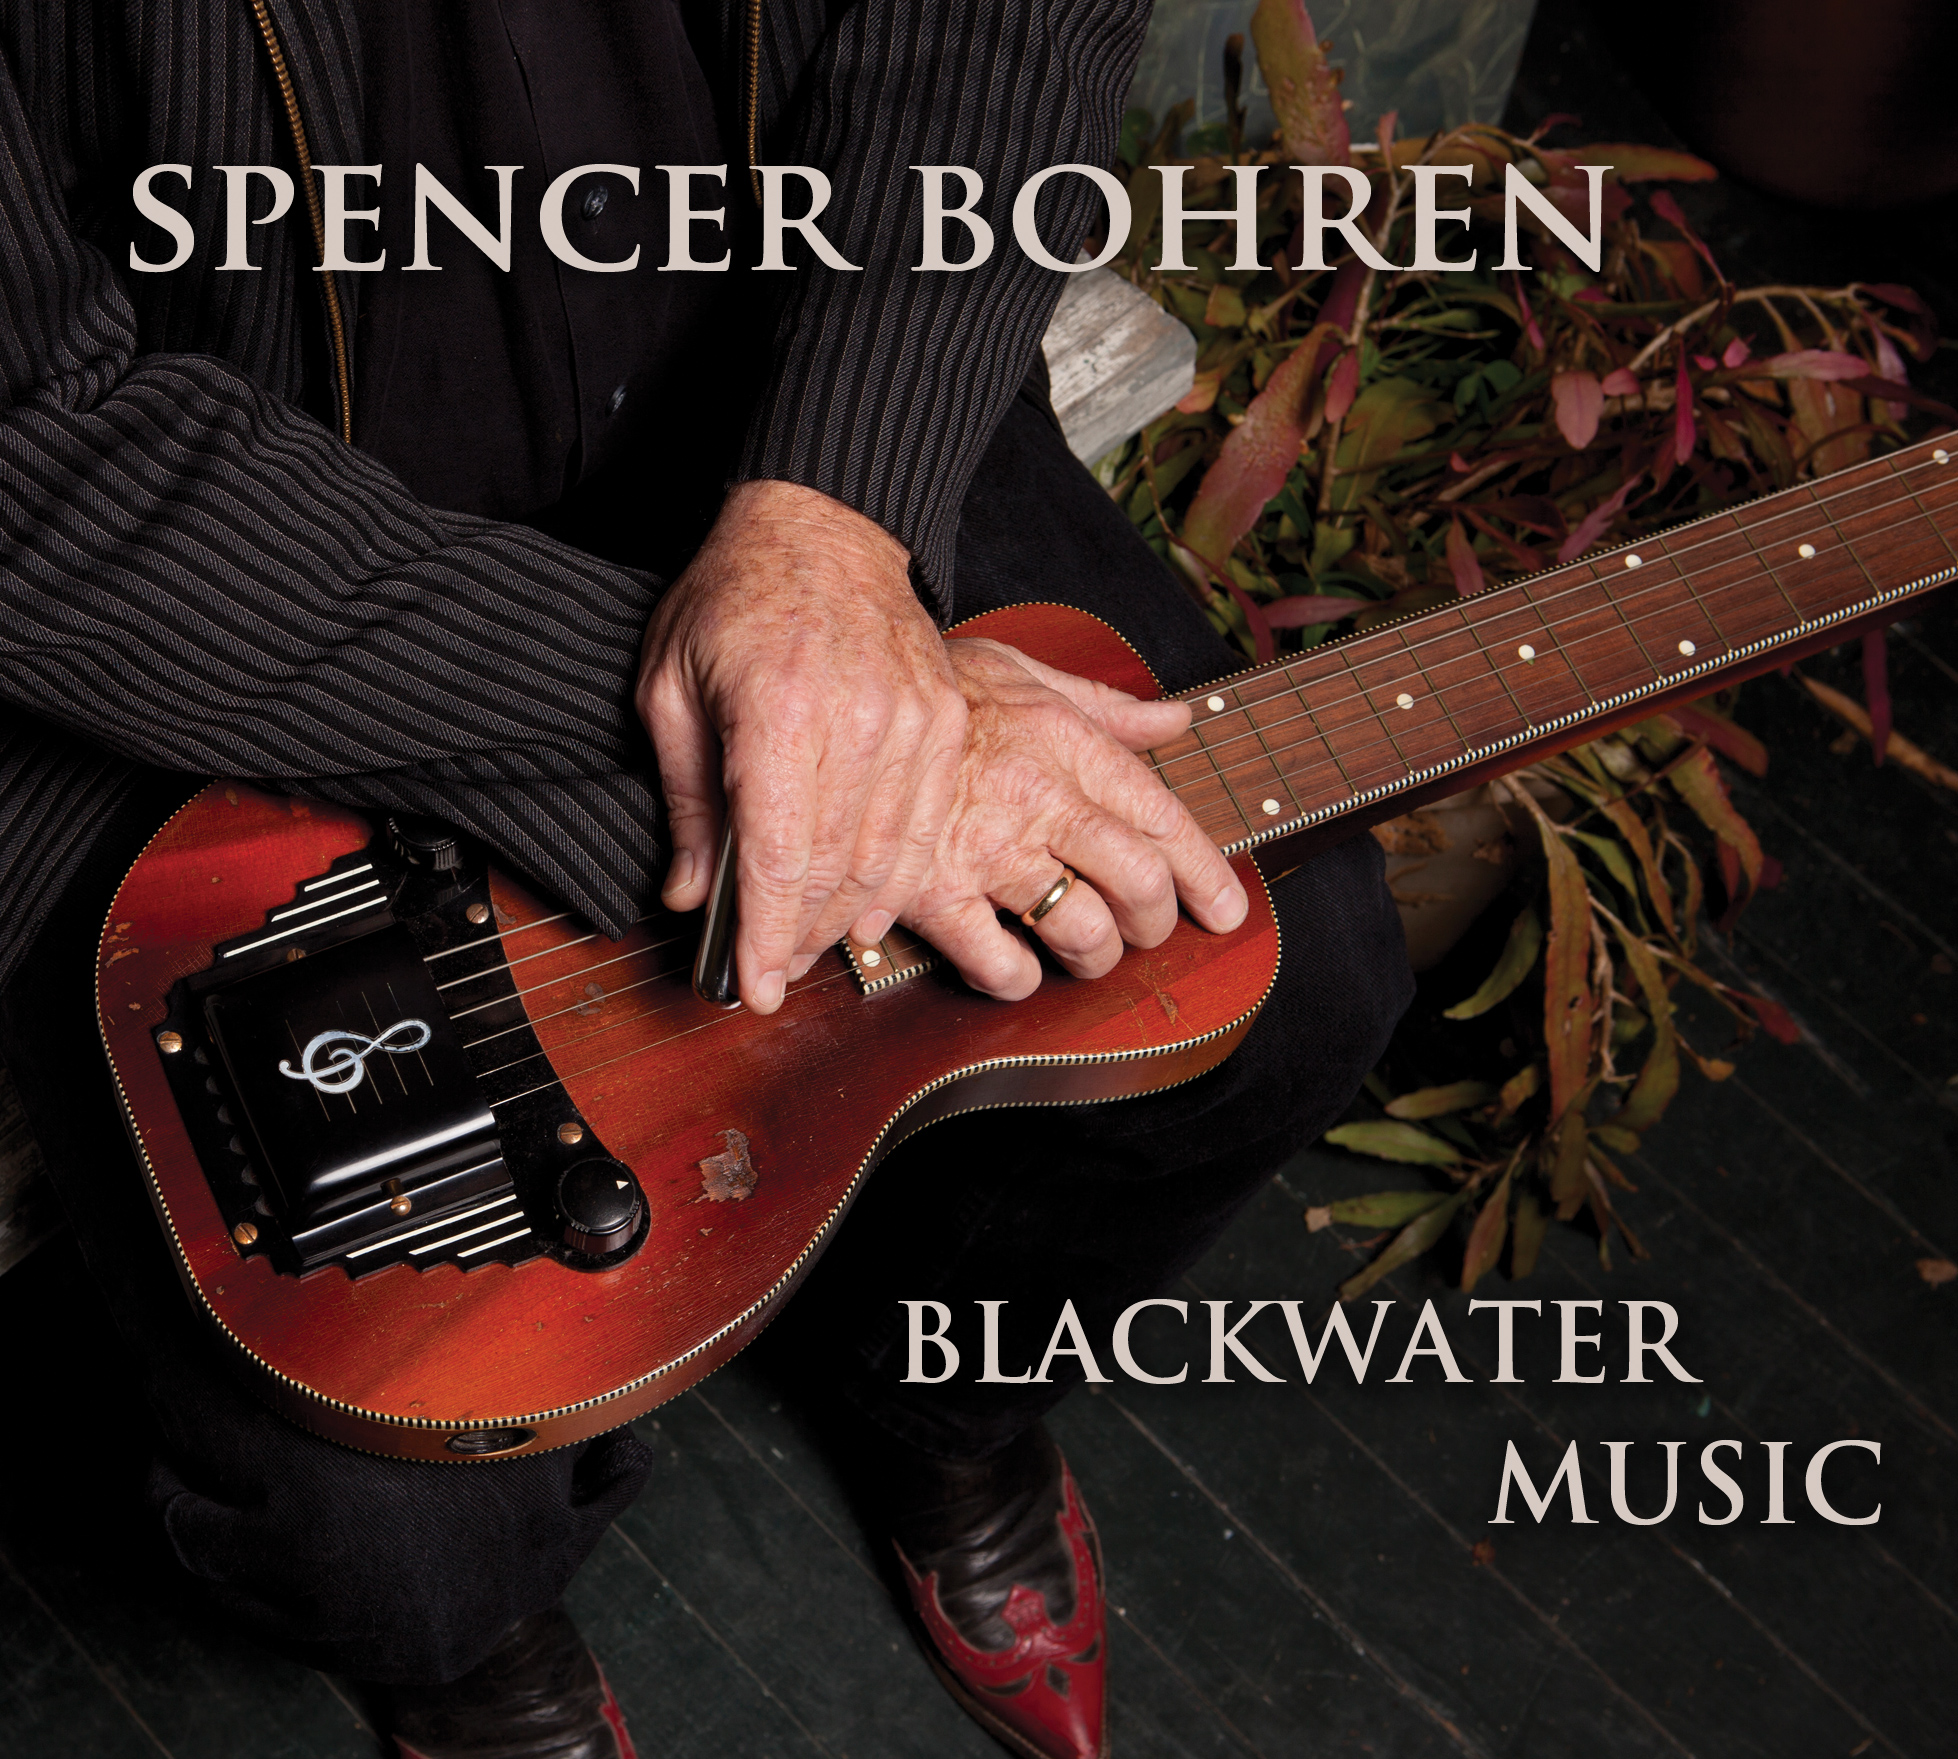 Blackwater Music